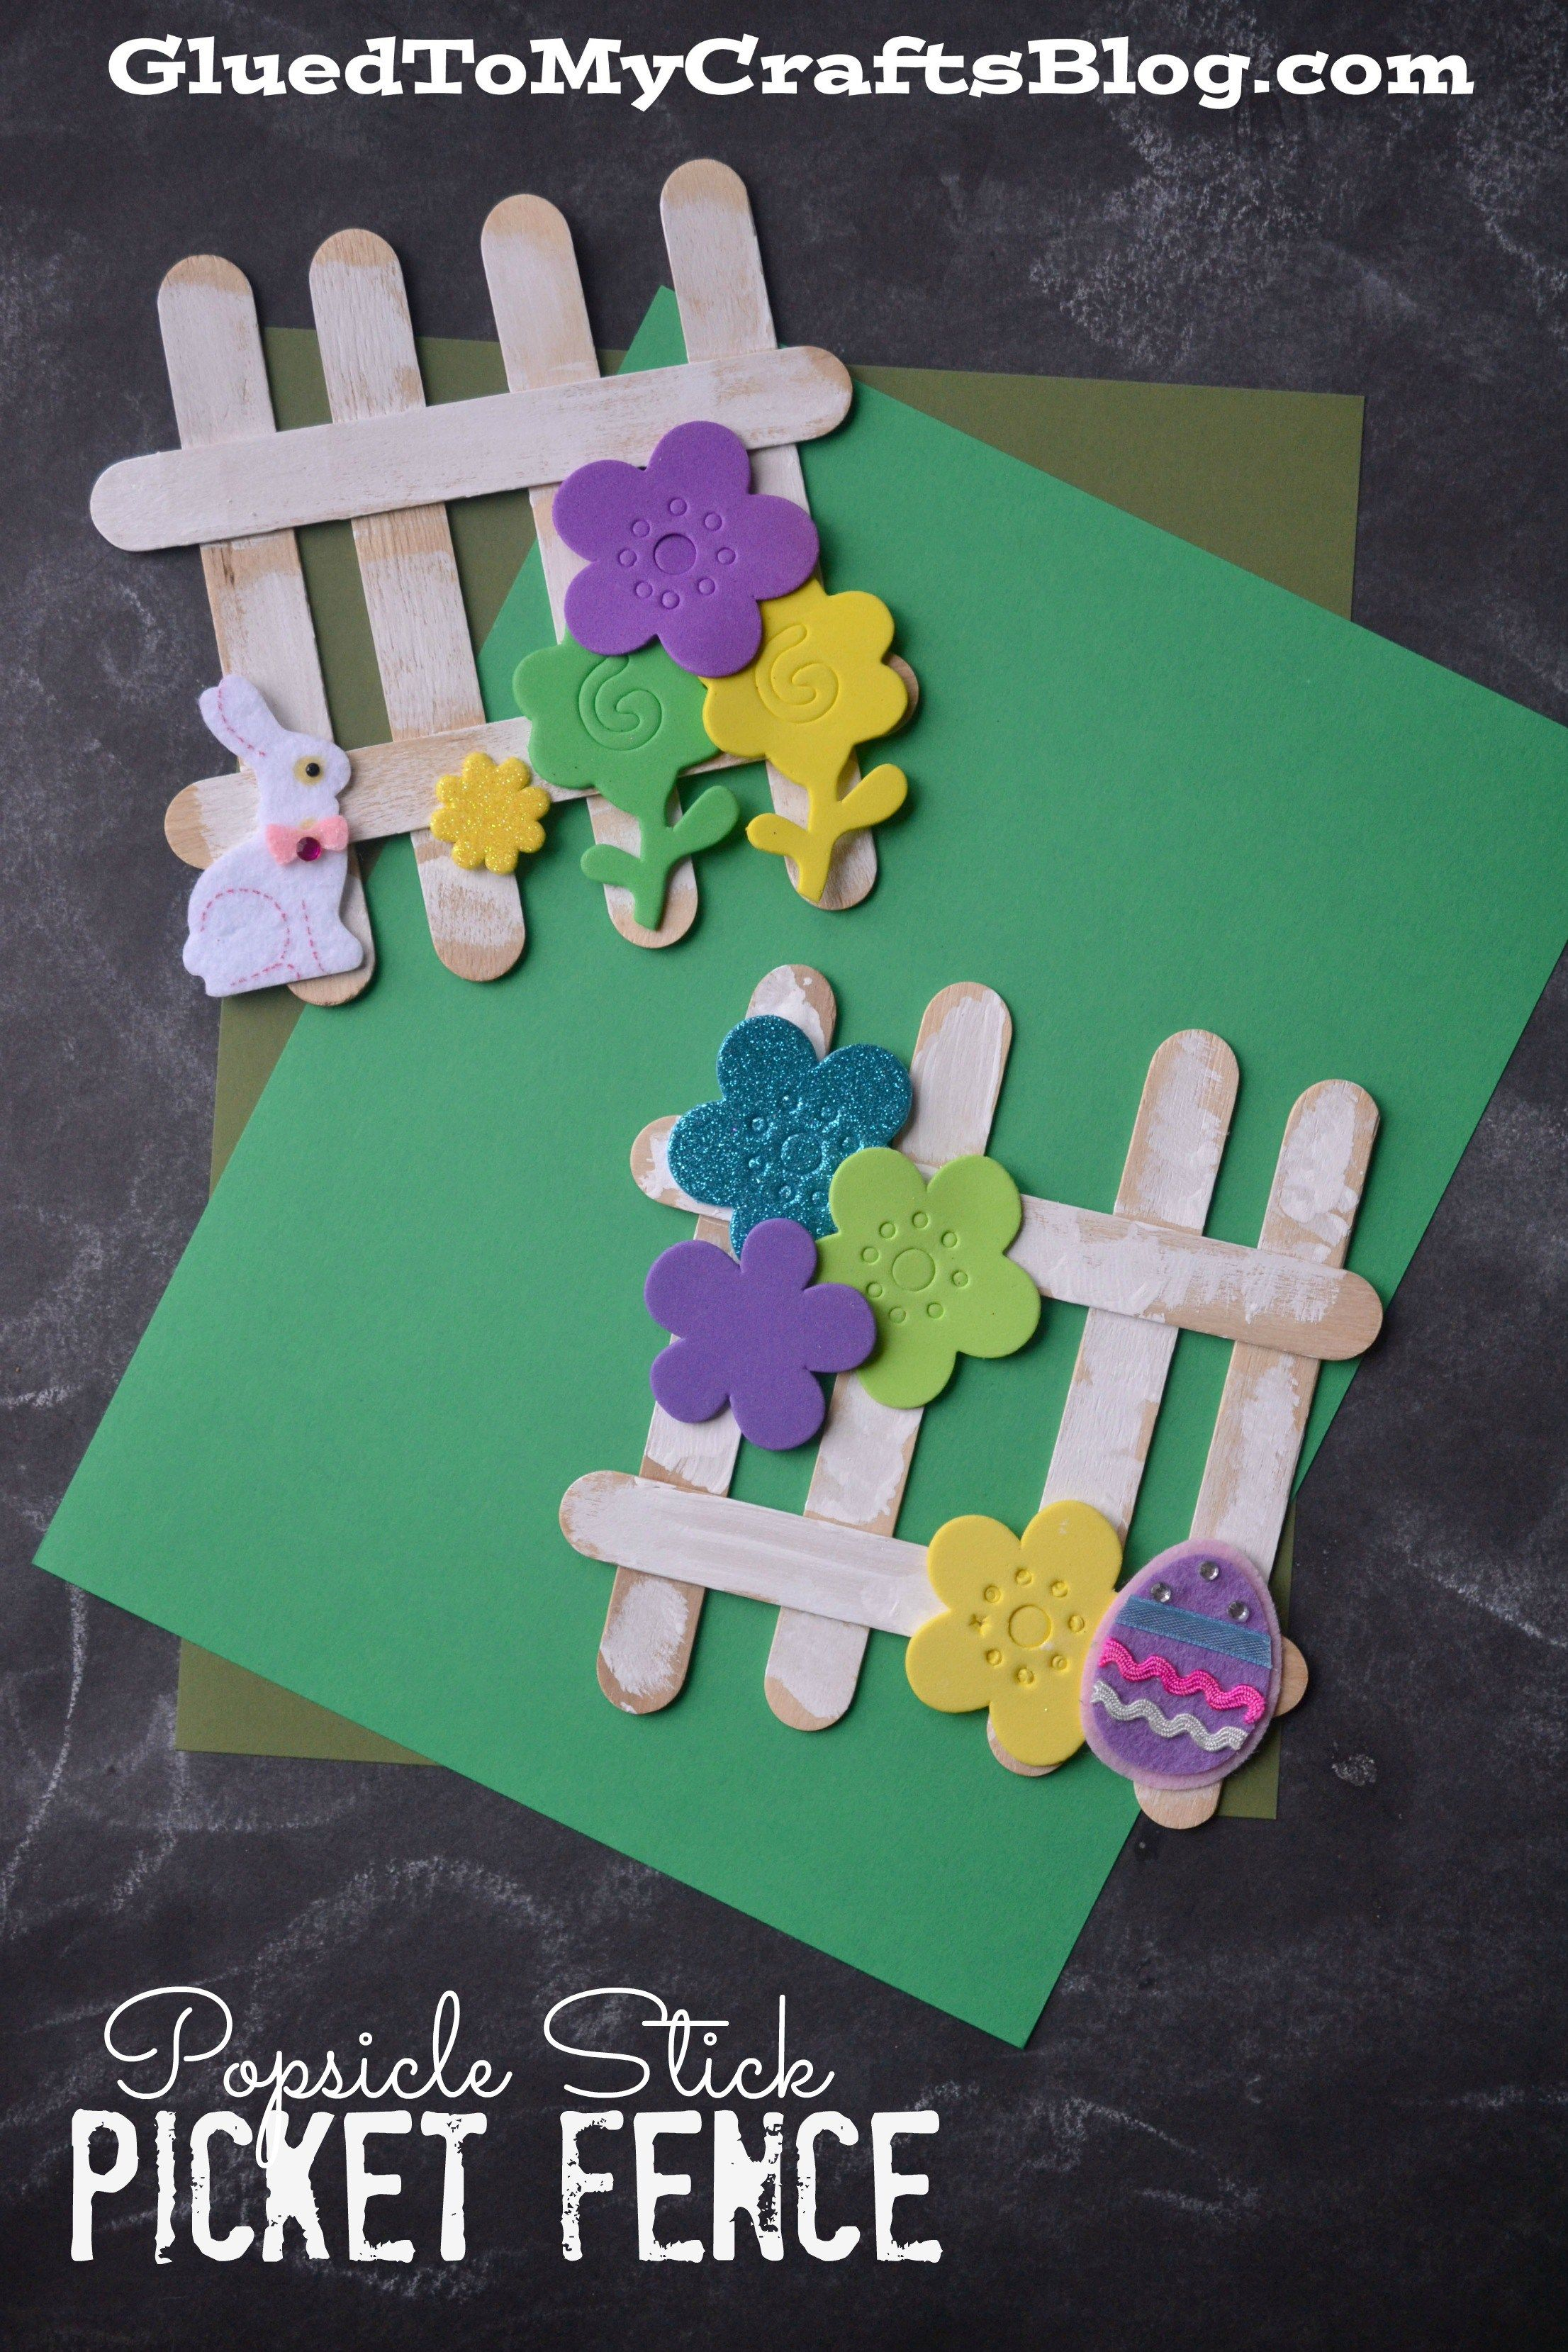 Popsicle stick picket fence kid craft manualidades for Idea door activity days